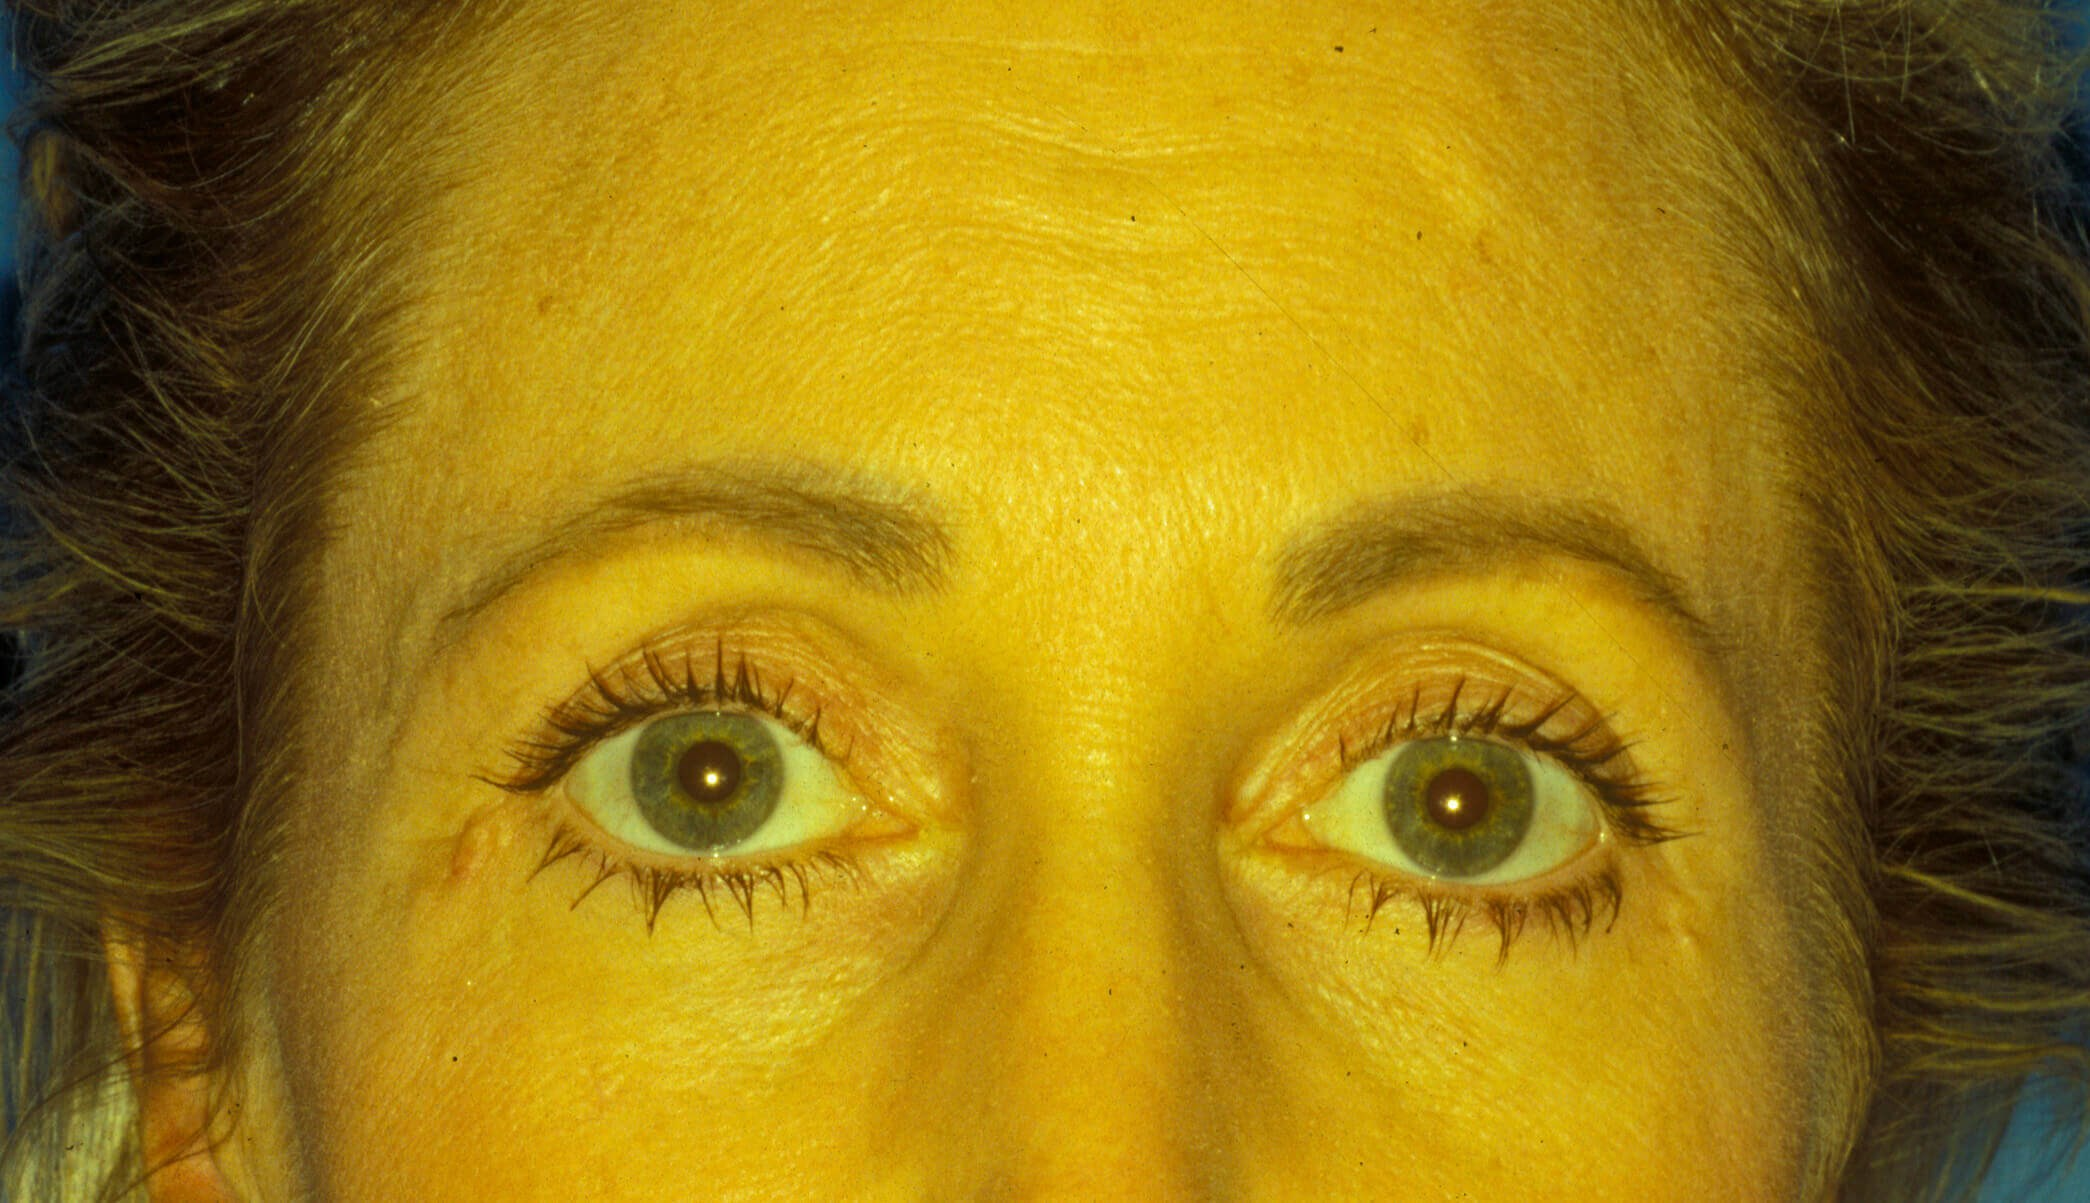 Brow lift, eyelids surgery Before